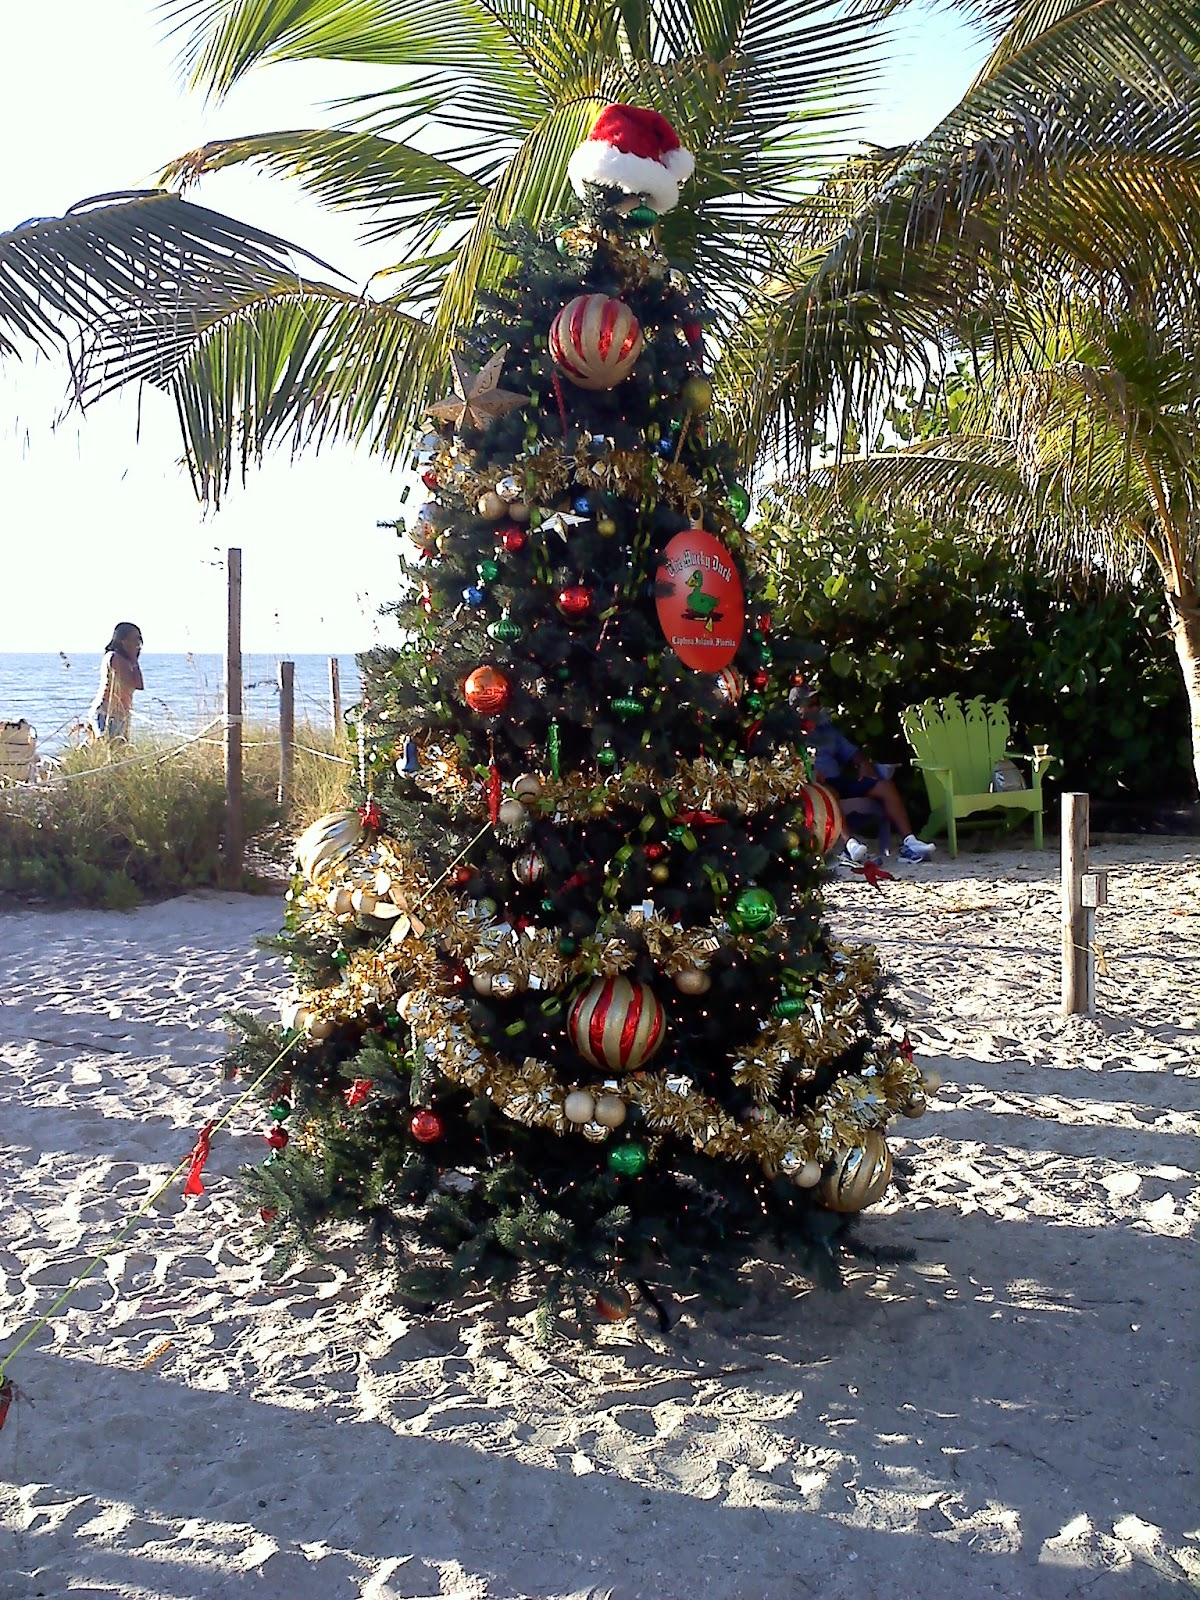 Christmas With Amy: More Signs of Christmas on the Beach